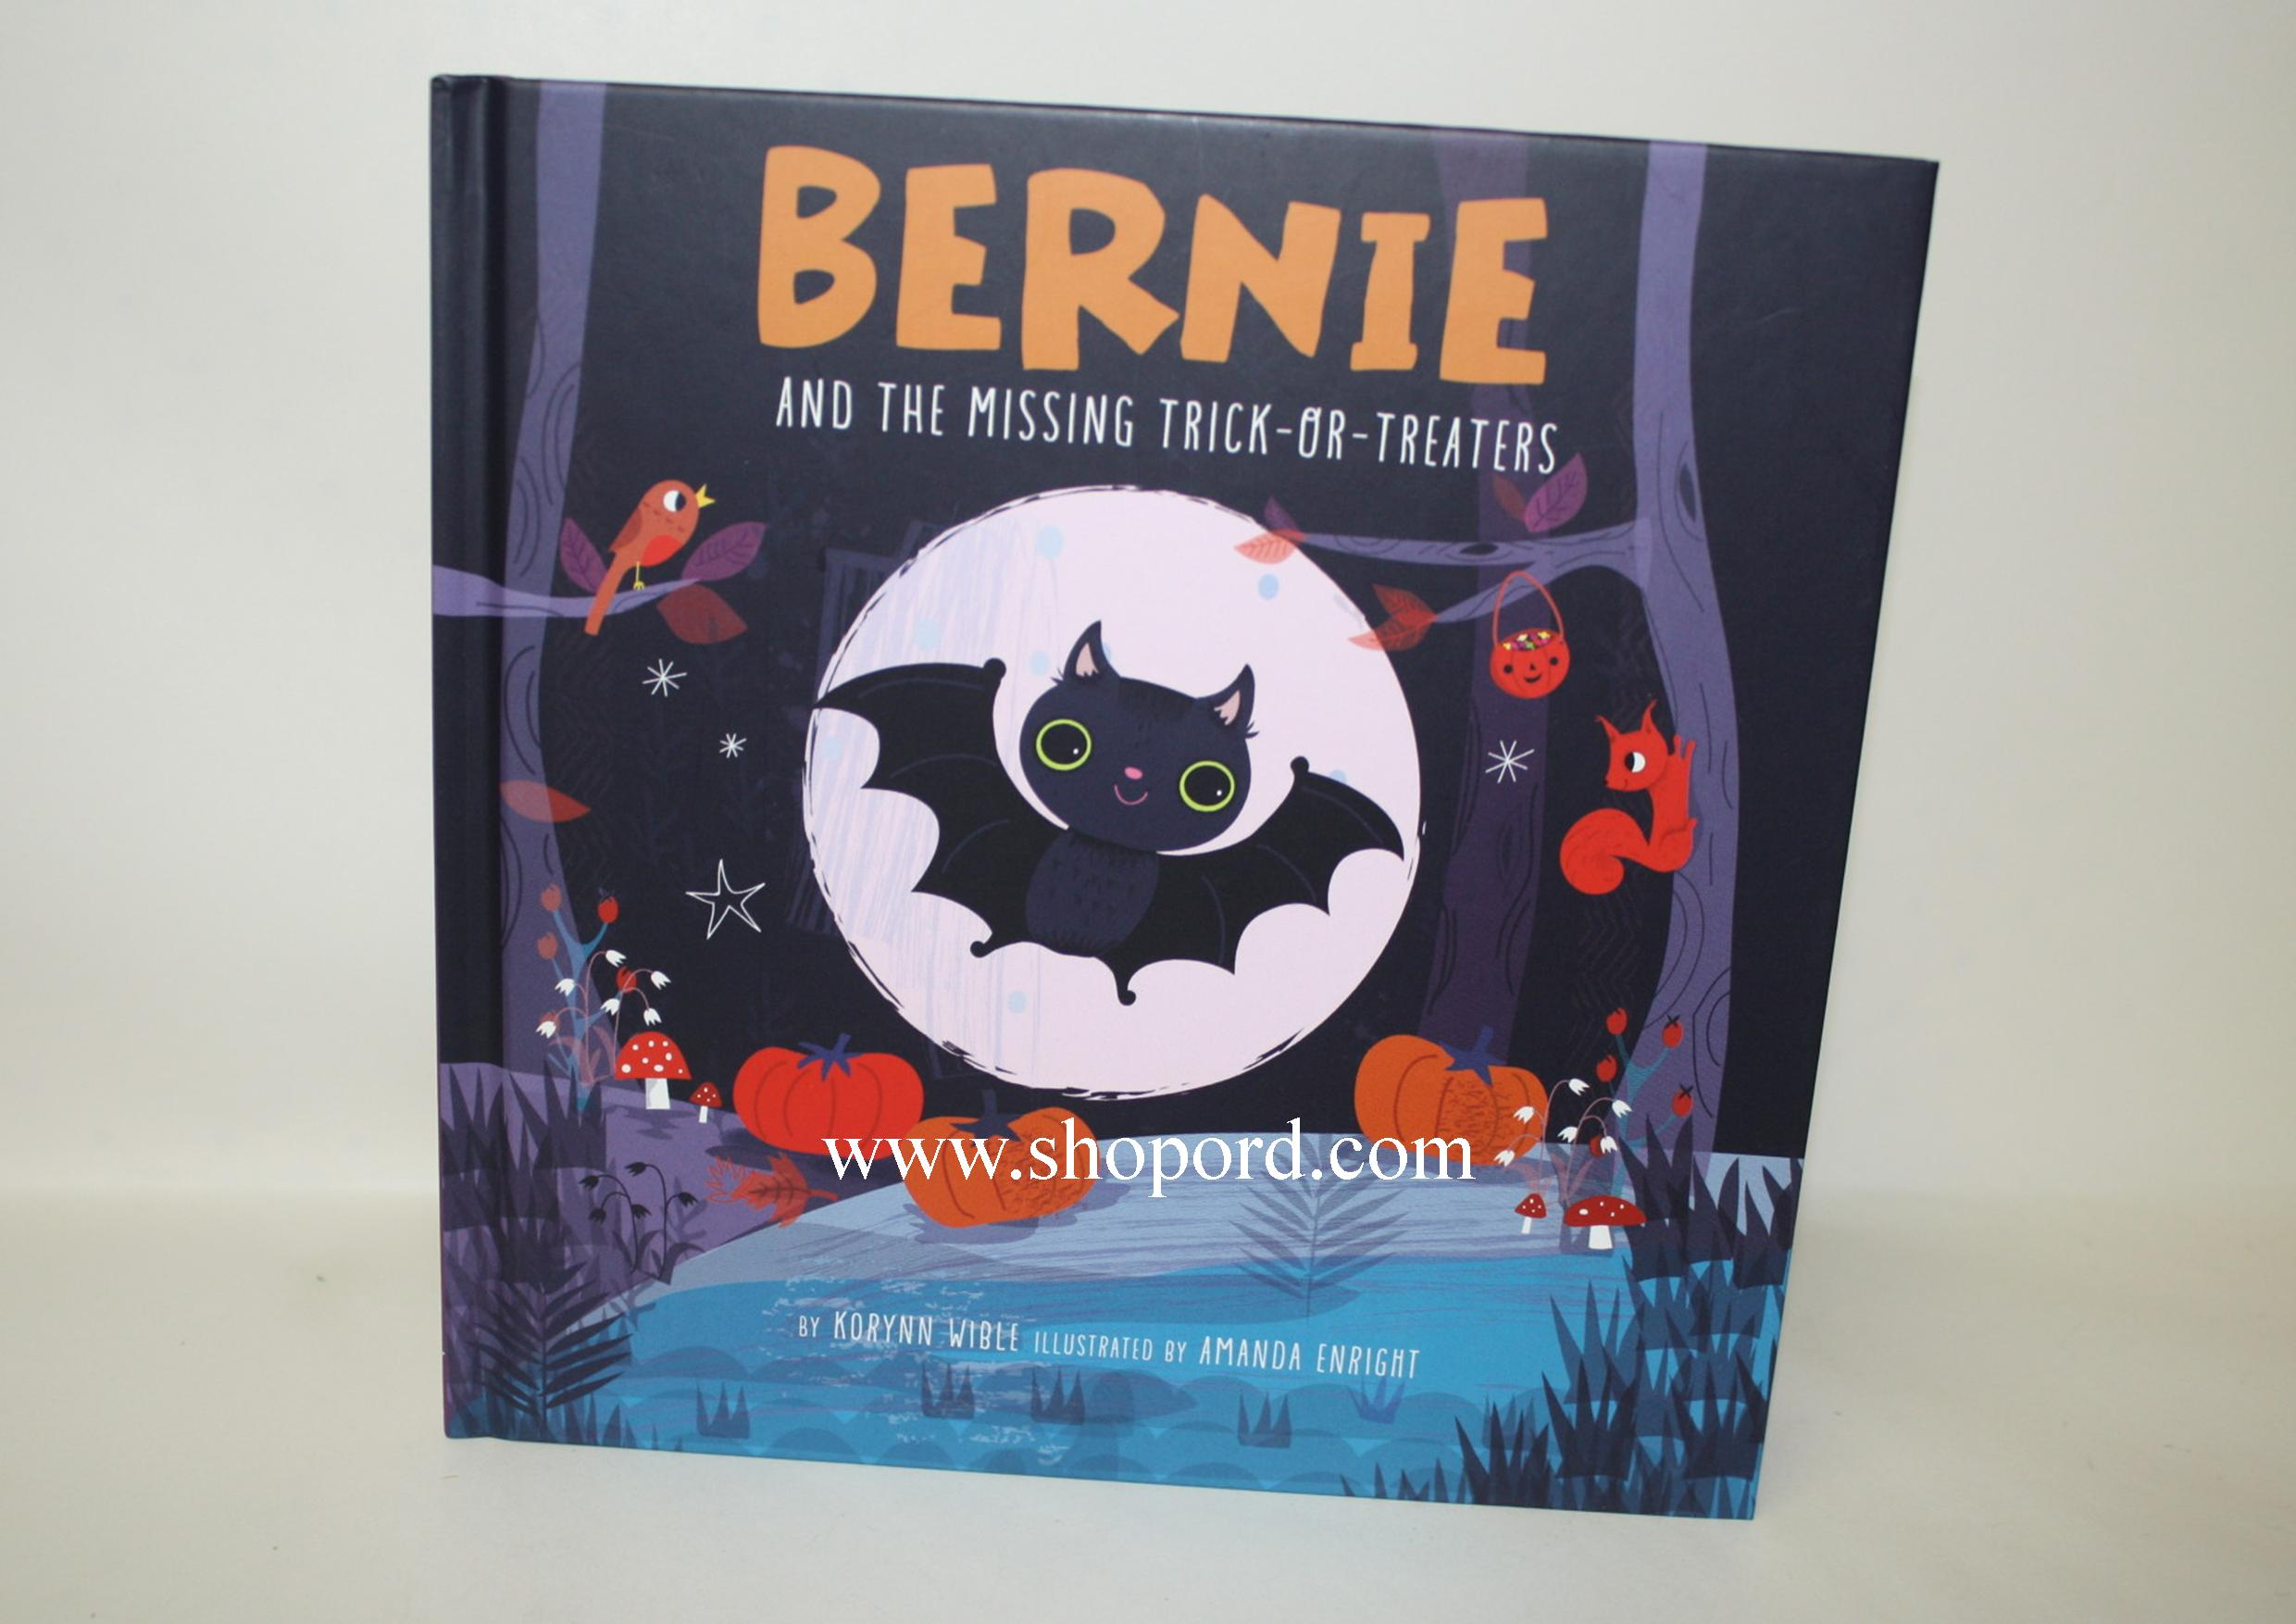 Hallmark Halloween Hardcover Book Bernie And The Missing Trick Or Treaters HGN1160